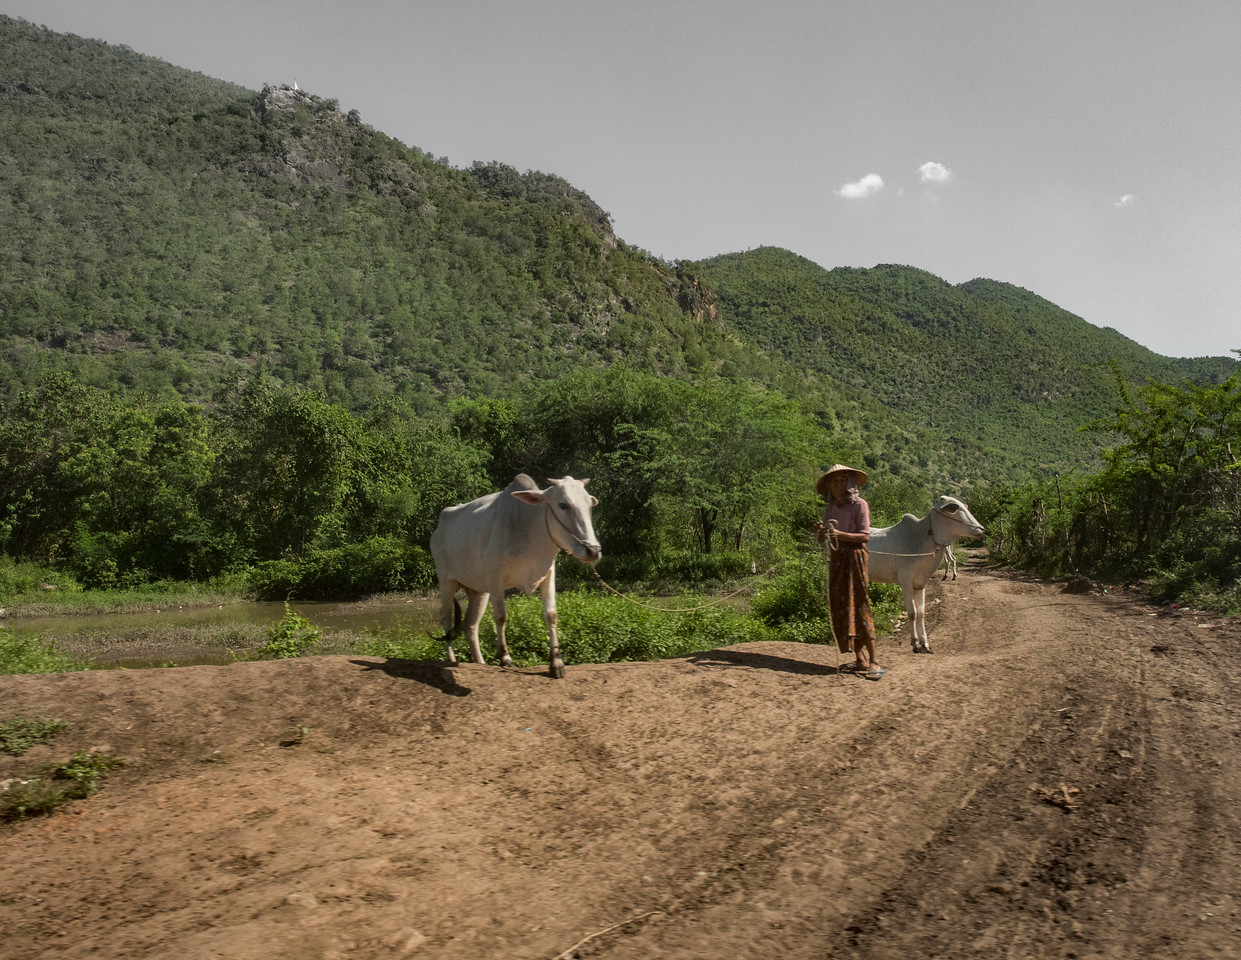 Farmer with oxen, Kyaukse, Myanmar